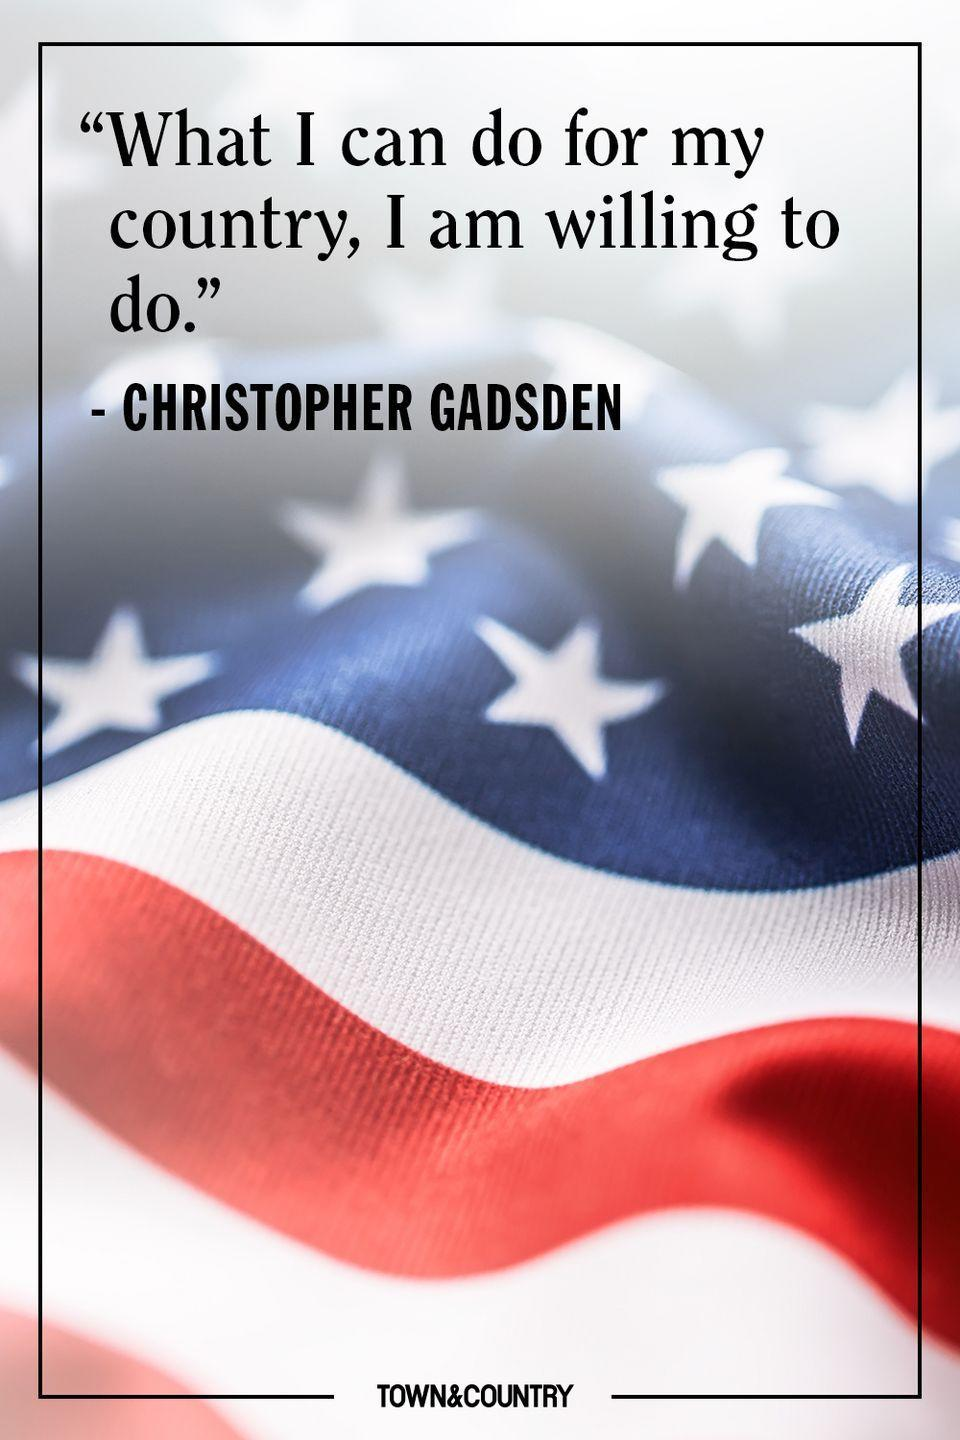 "<p>""What I can do for my country, I am willing to do.""<br></p><p>– Christopher Gadsden</p>"